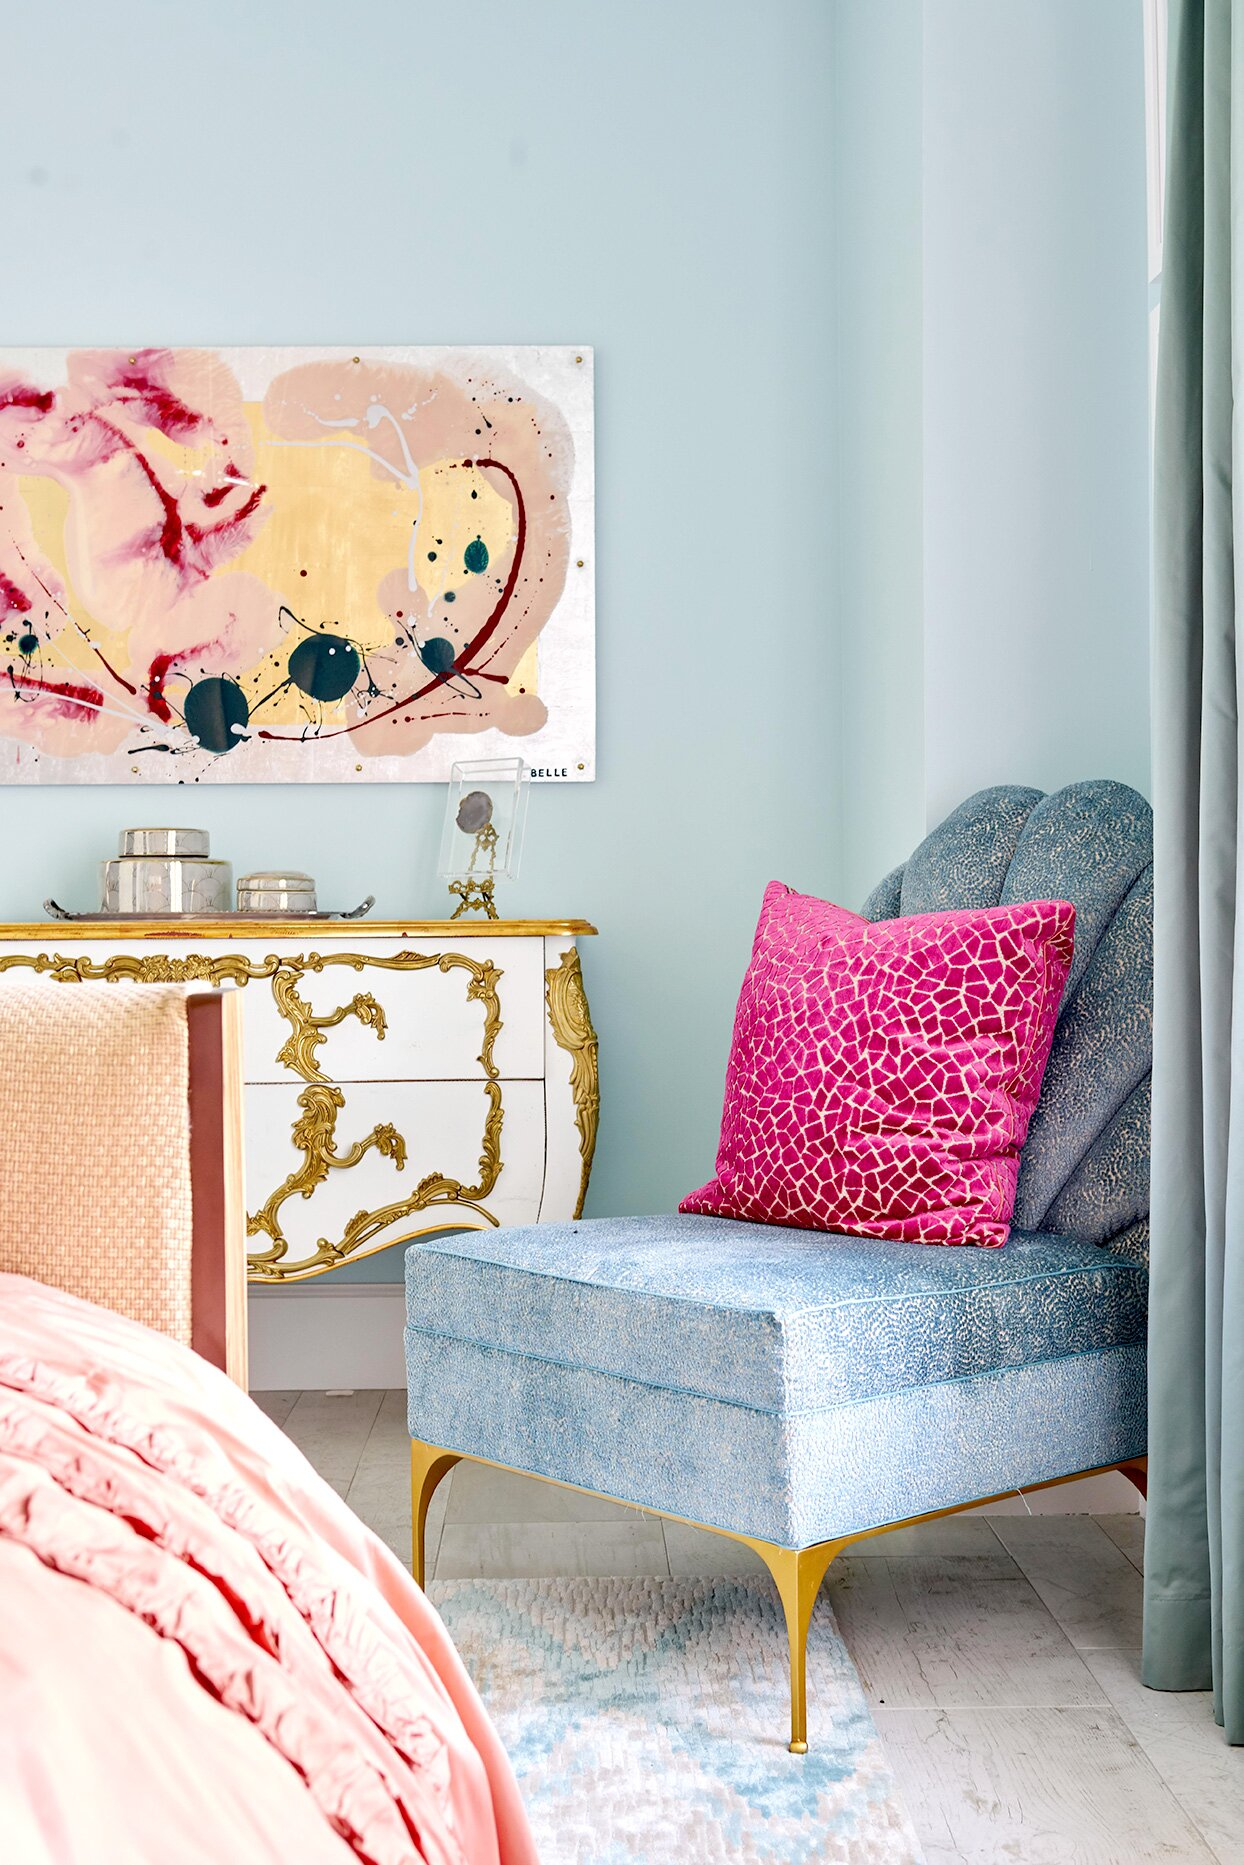 Interior Designers And Paint Experts Share Their Favorite Wall Colors Better Homes Gardens